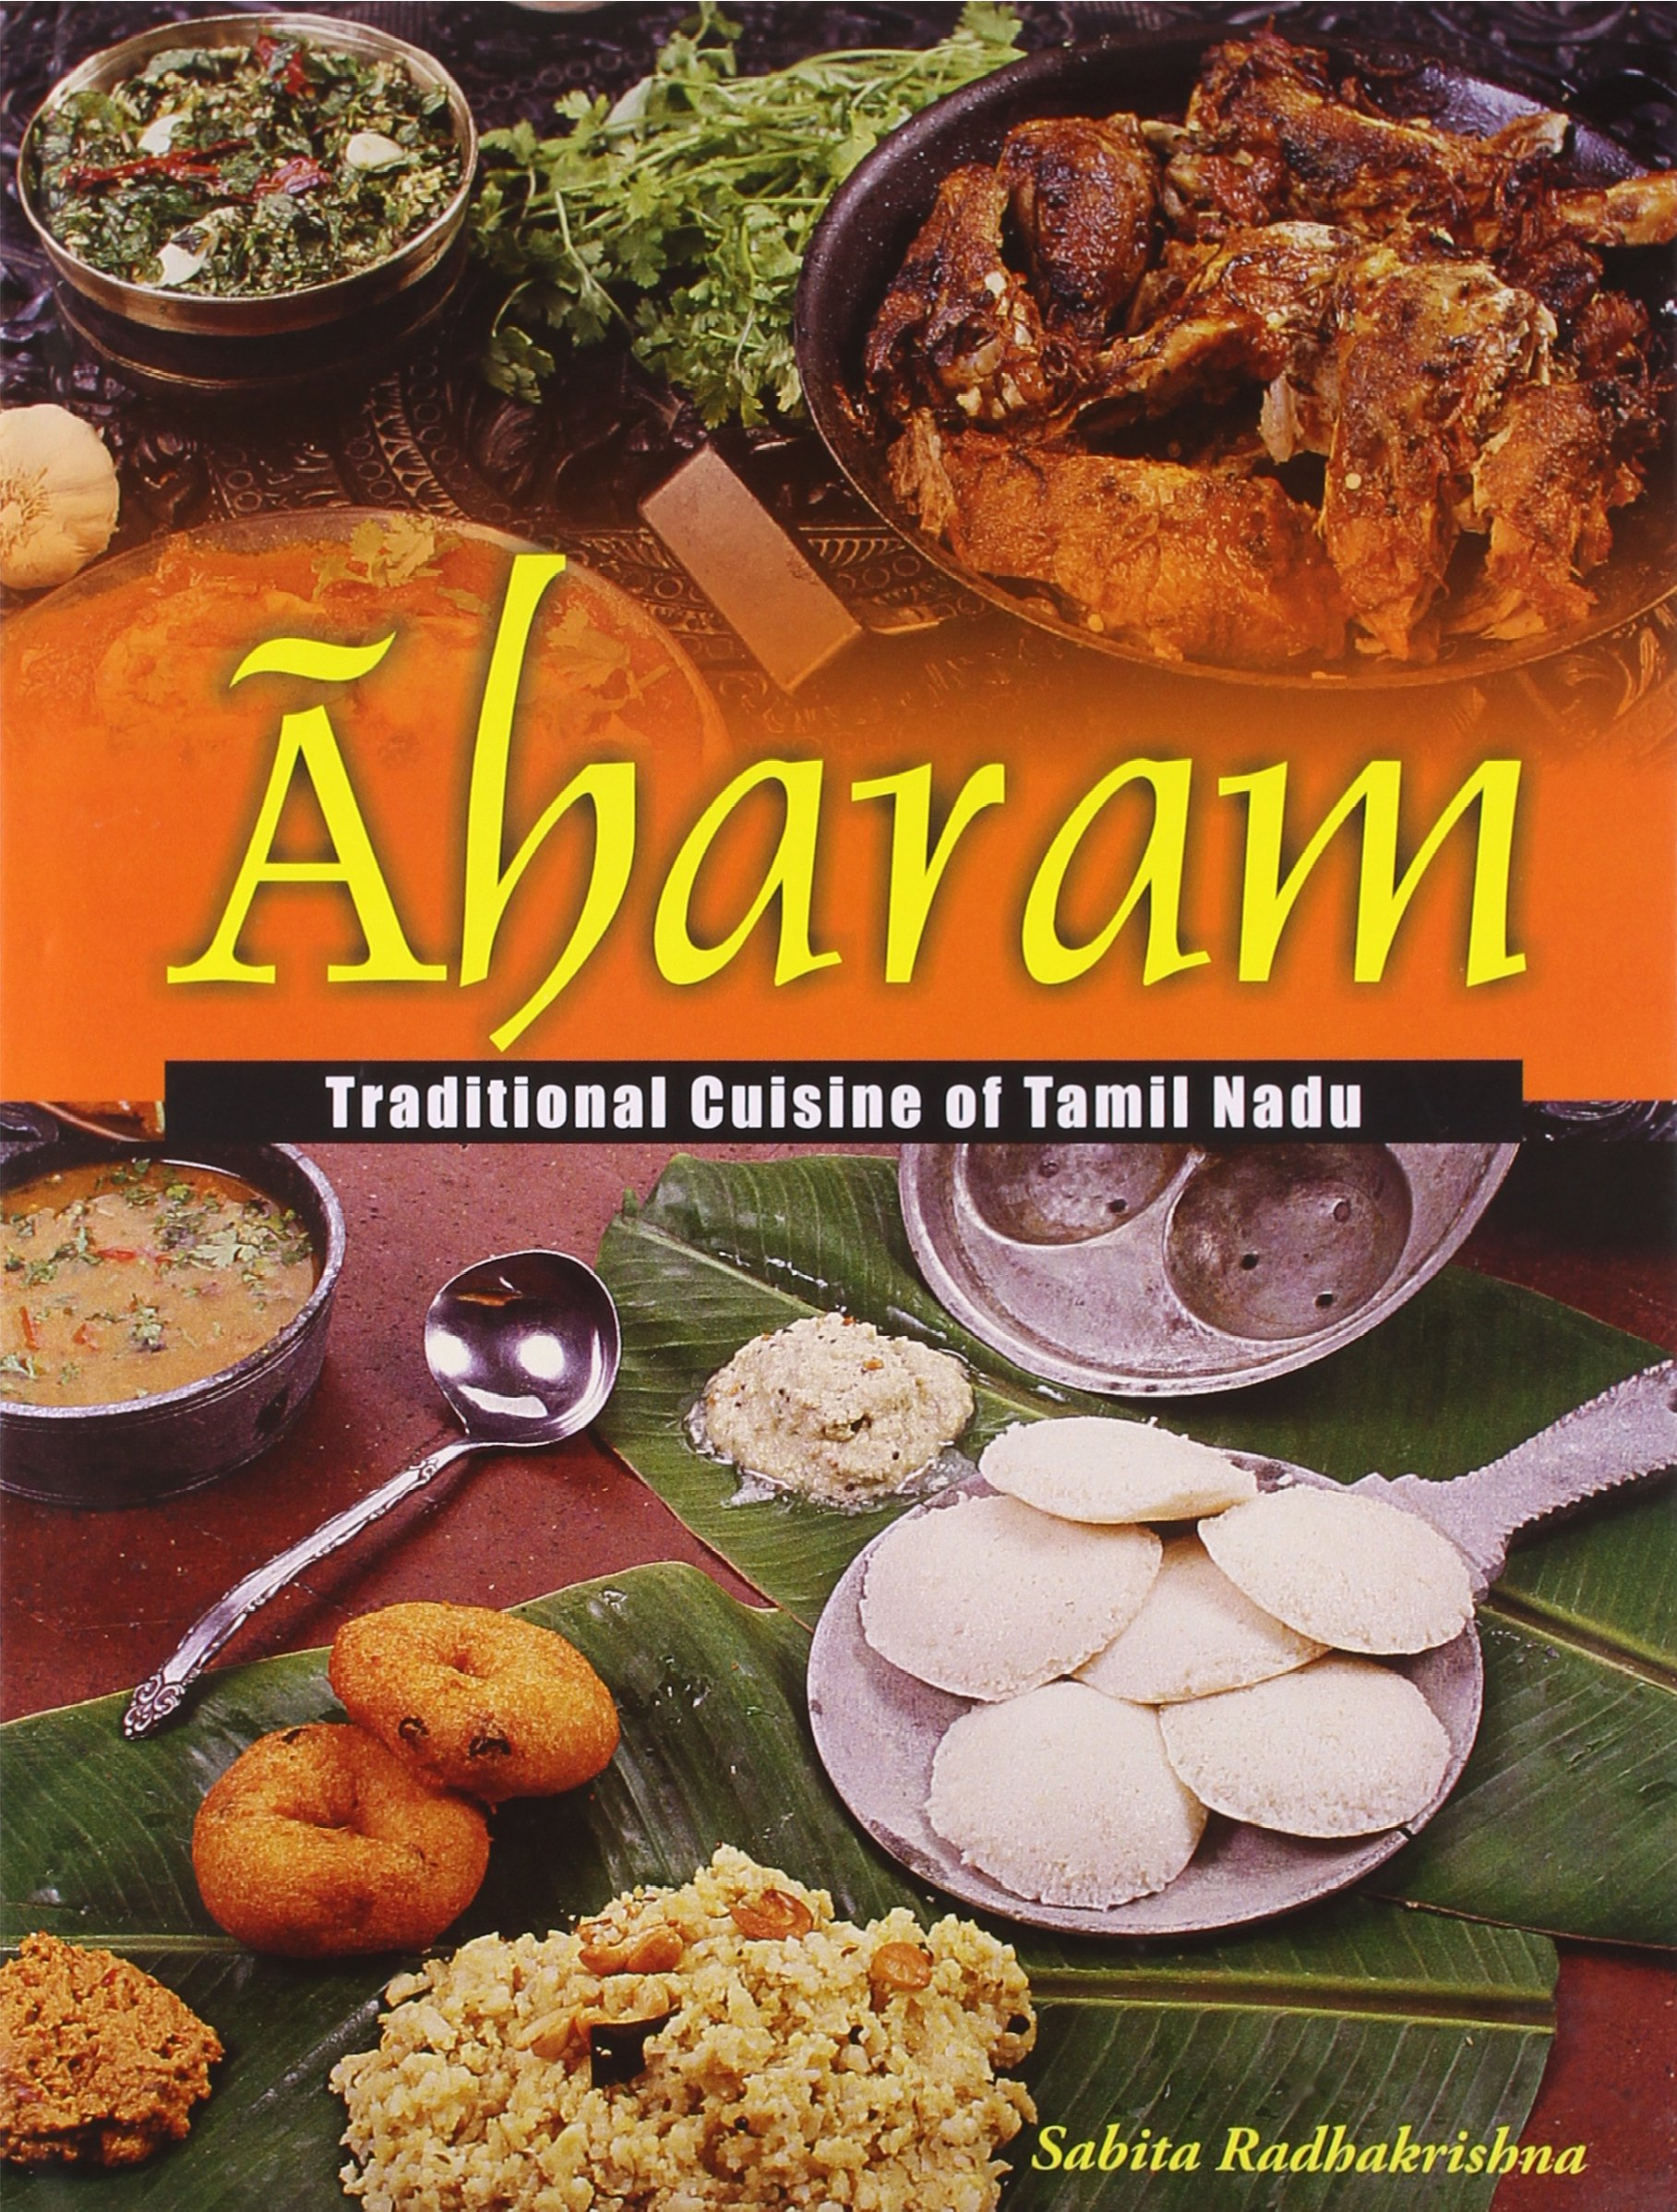 Aharam traditional cuisine of tamil nadu s radhakrishnan aharam traditional cuisine of tamil nadu s radhakrishnan 9788176930208 amazon books forumfinder Image collections